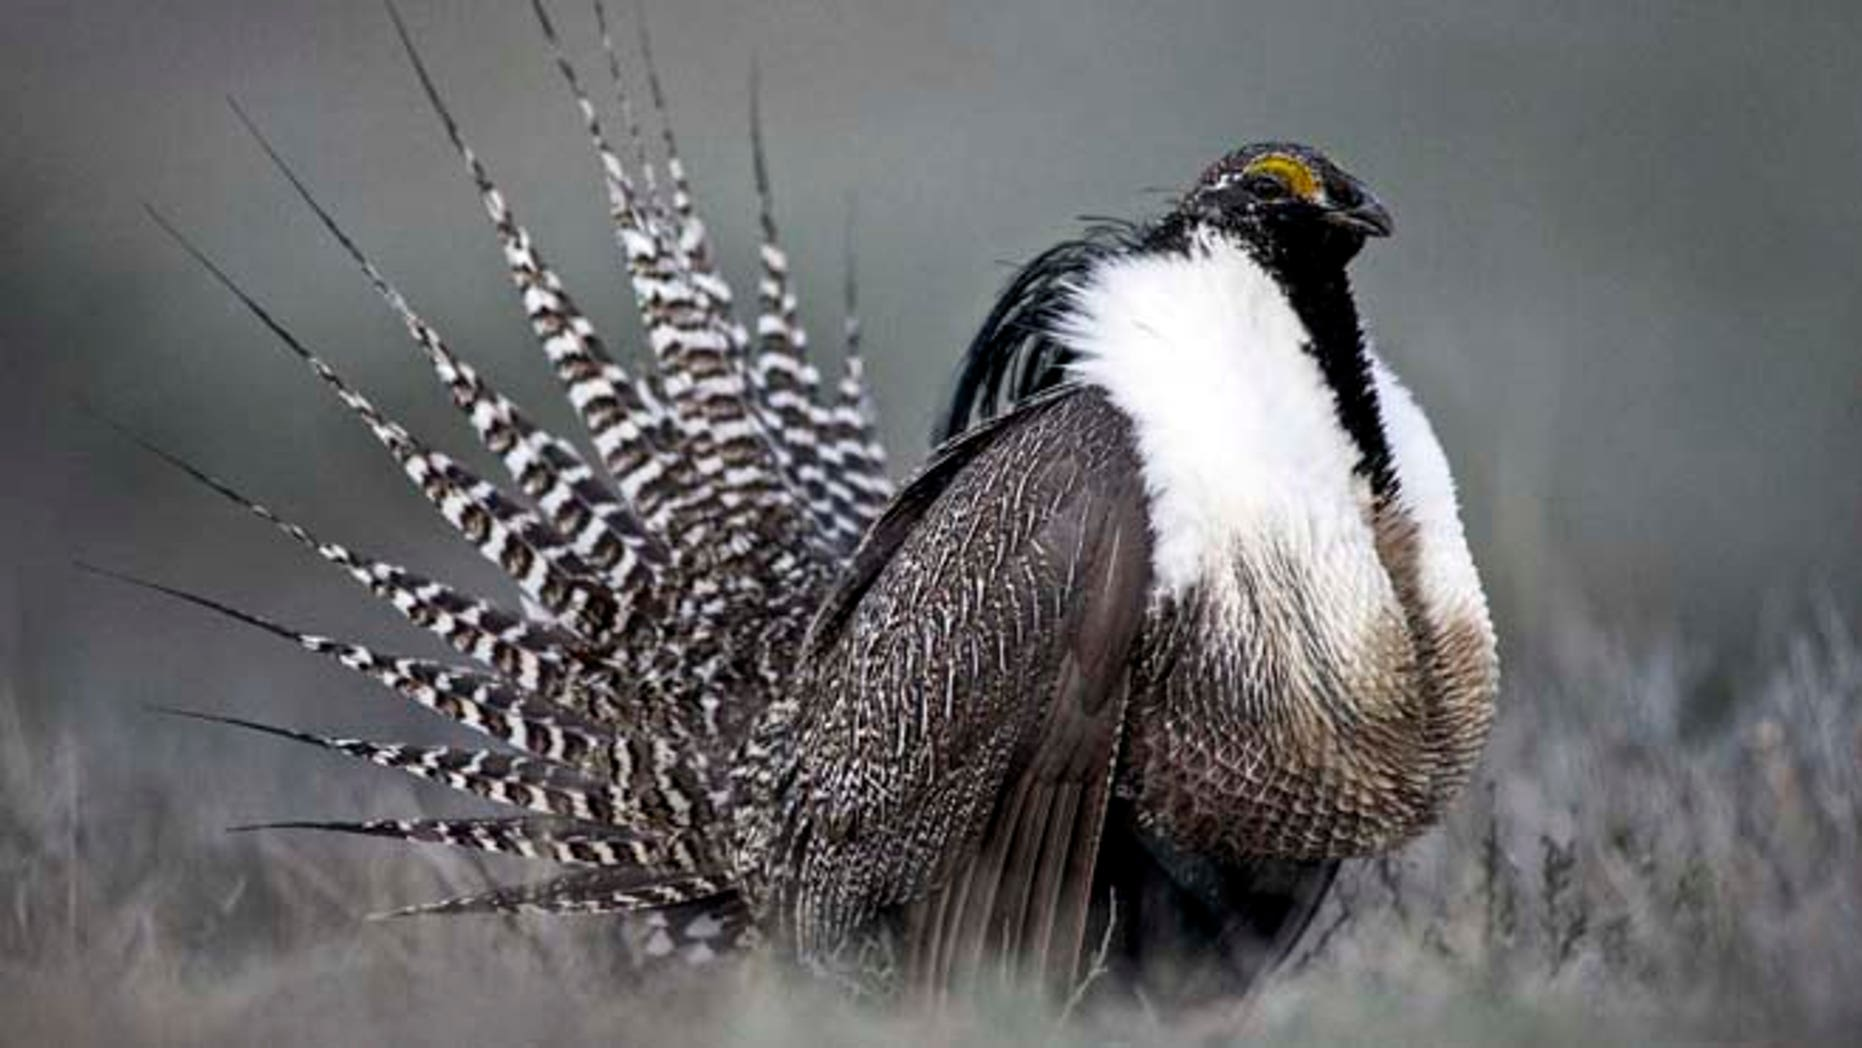 This April 2014 file photo provided by Colorado Parks and Wildlife shows a Gunnison sage grouse with tail feathers fanned near Gunnison, Colo.